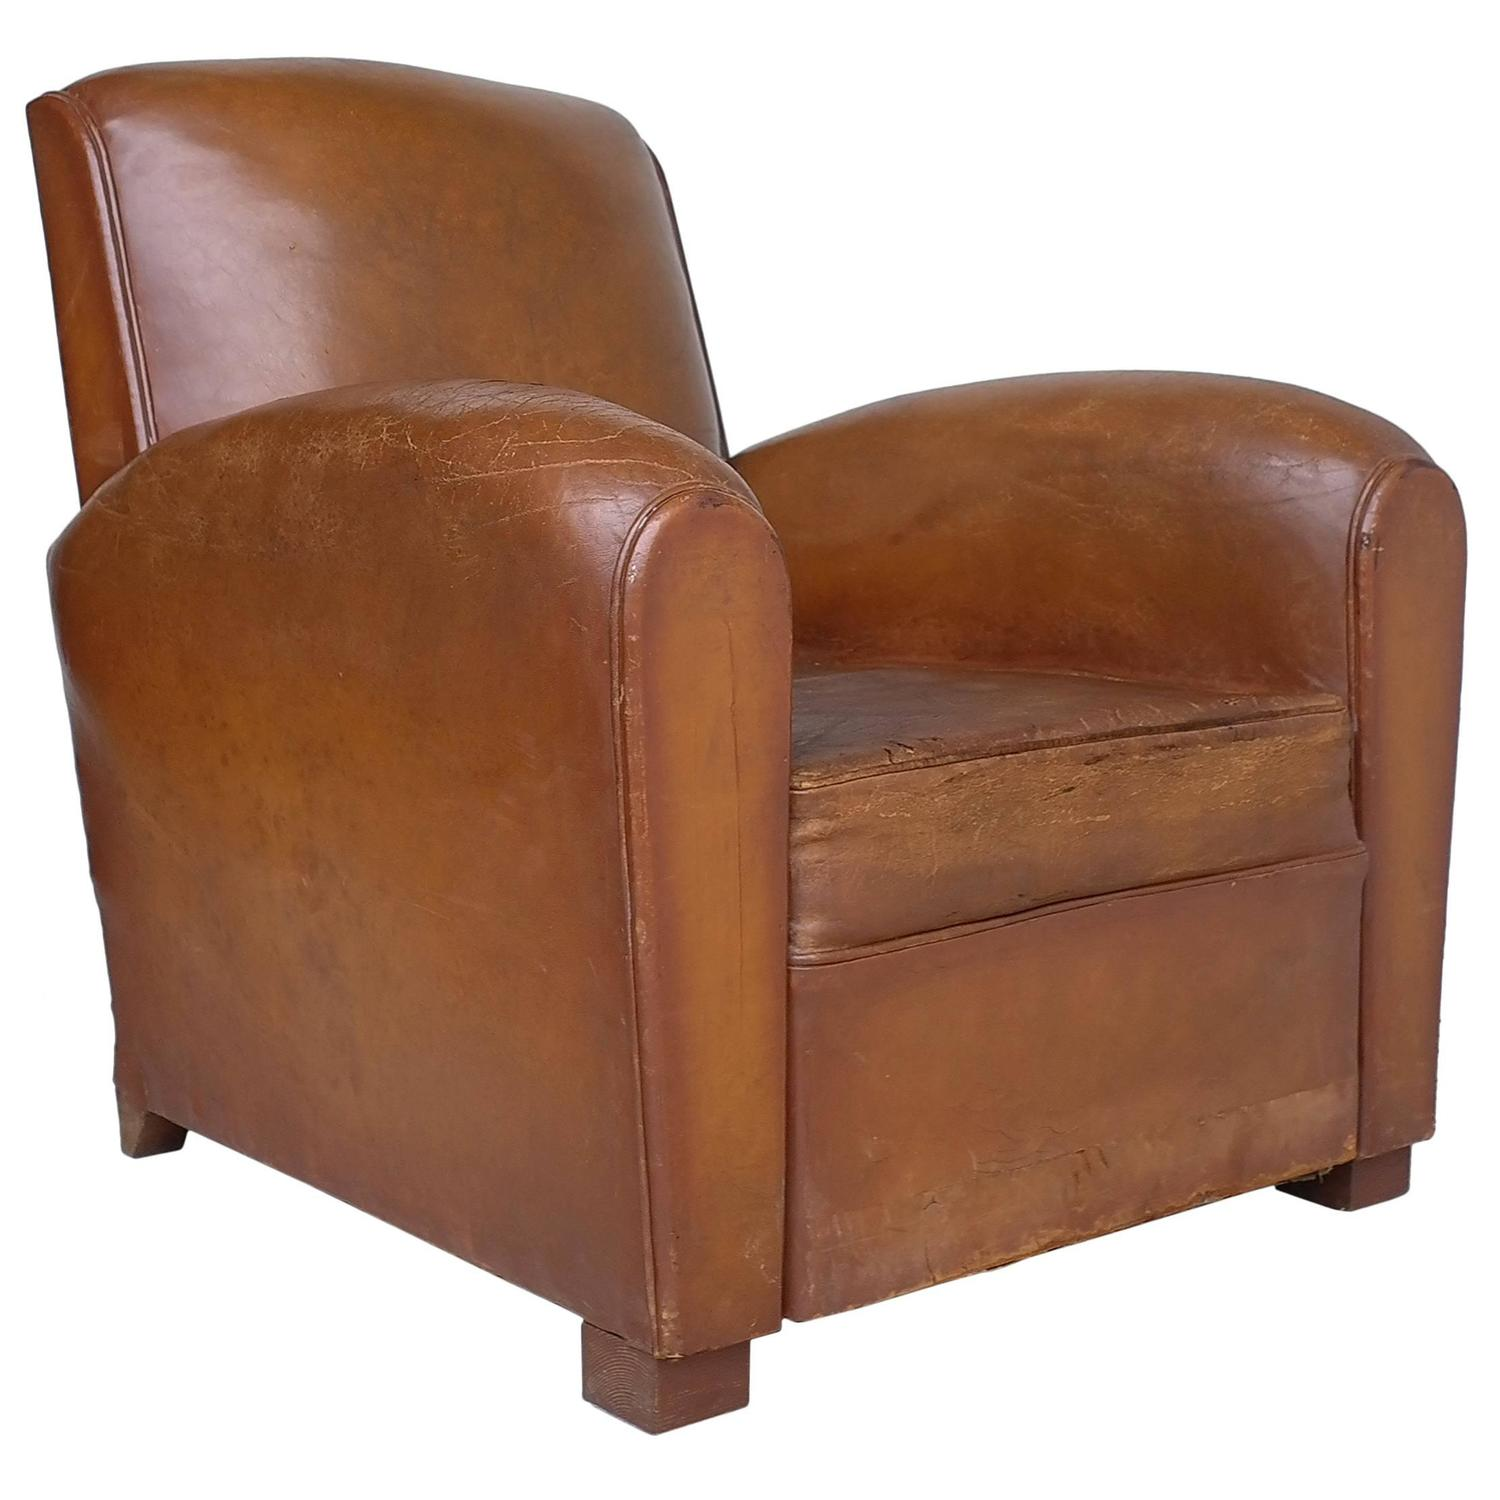 Cognac Leather Club chair France 1930s at 1stdibs